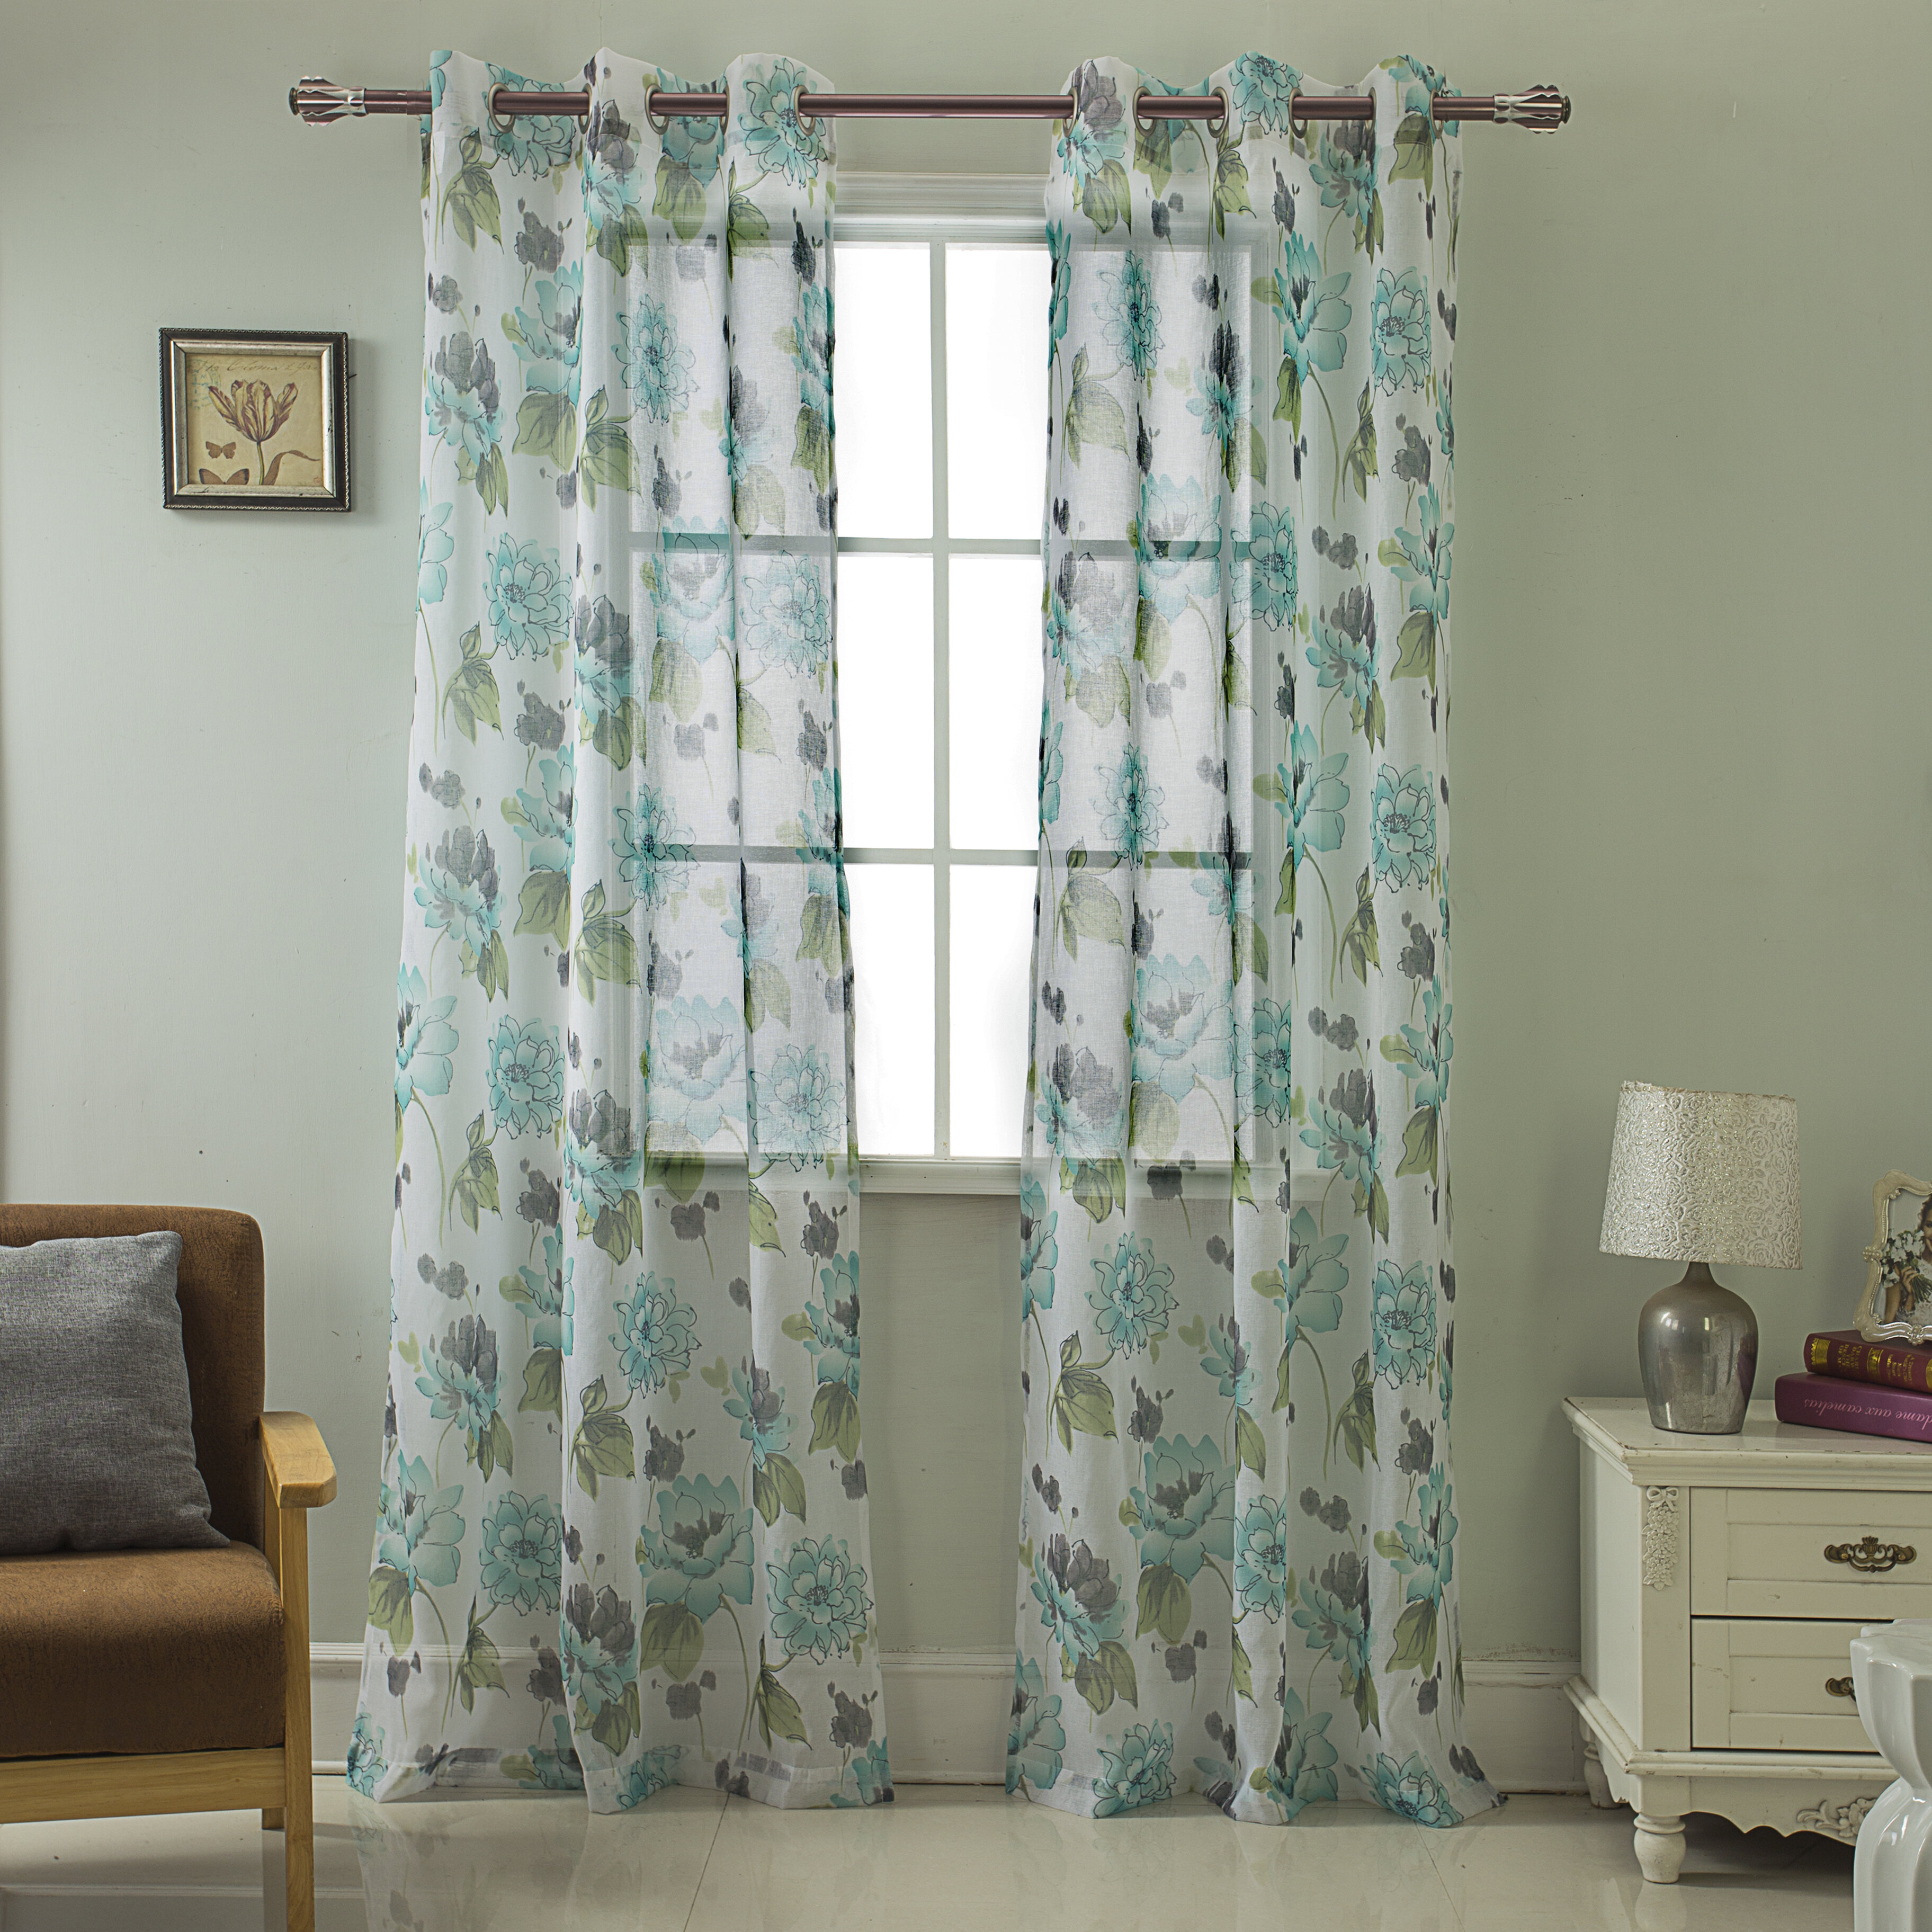 Farr Printed Floral Semi Sheer Grommet Curtain Panels With Intersect Grommet Woven Print Window Curtain Panels (View 3 of 20)